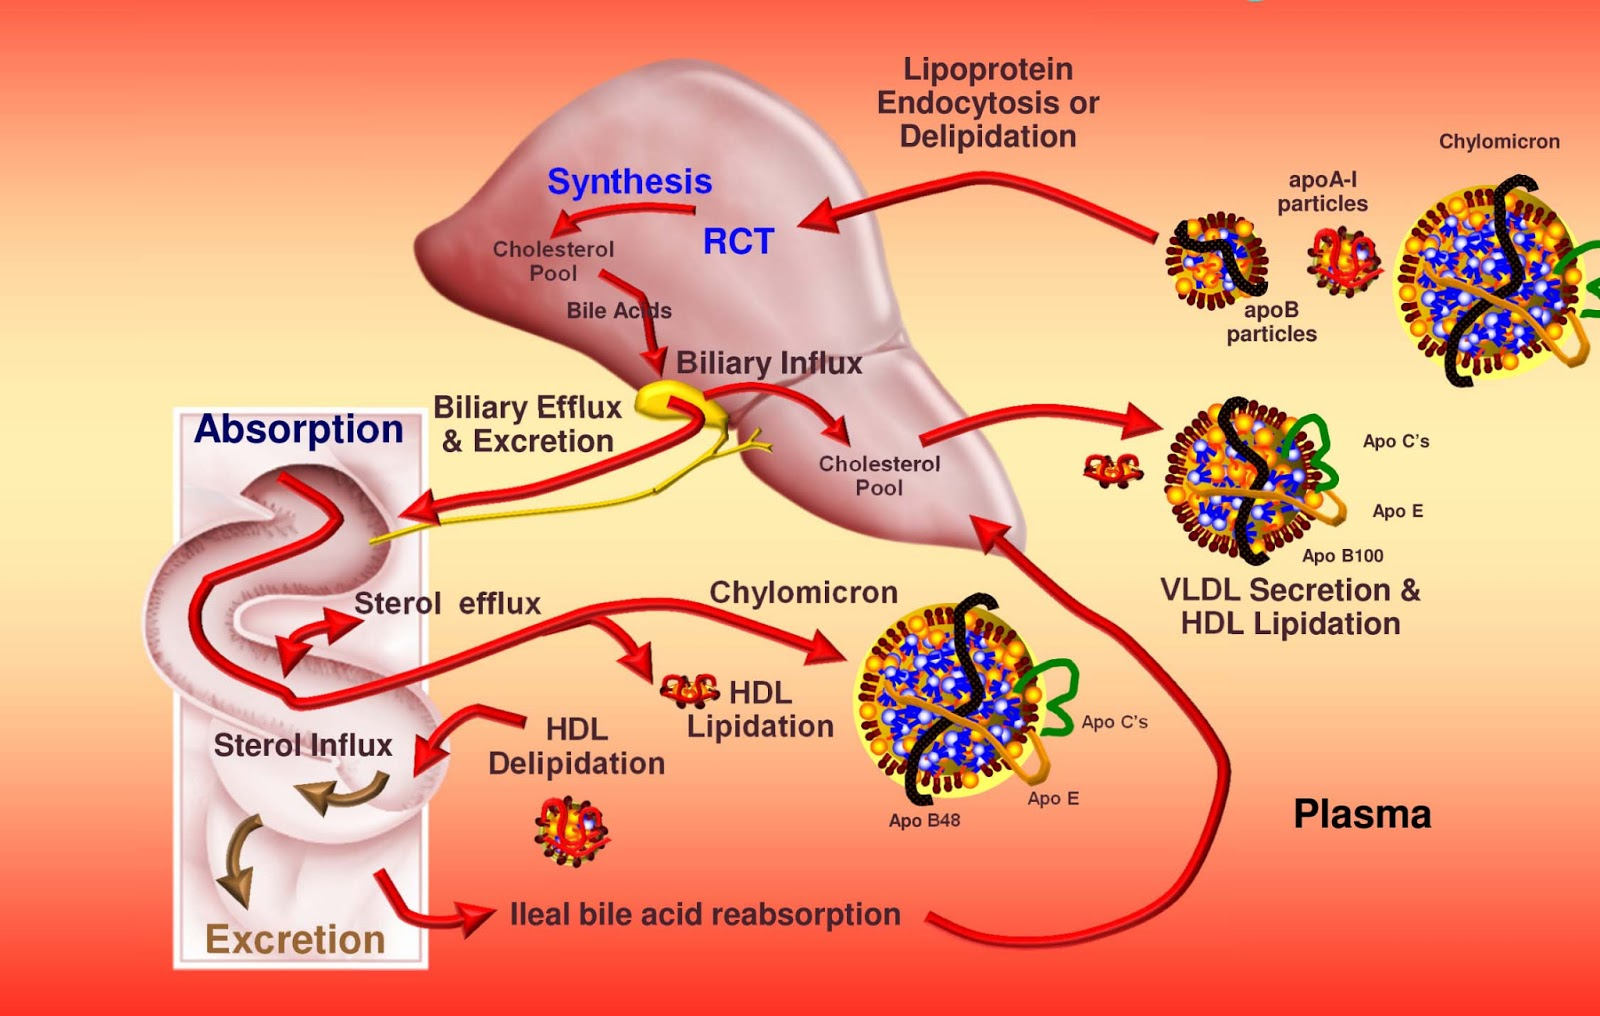 relationship of cholesterol and lipoproteins metabolism